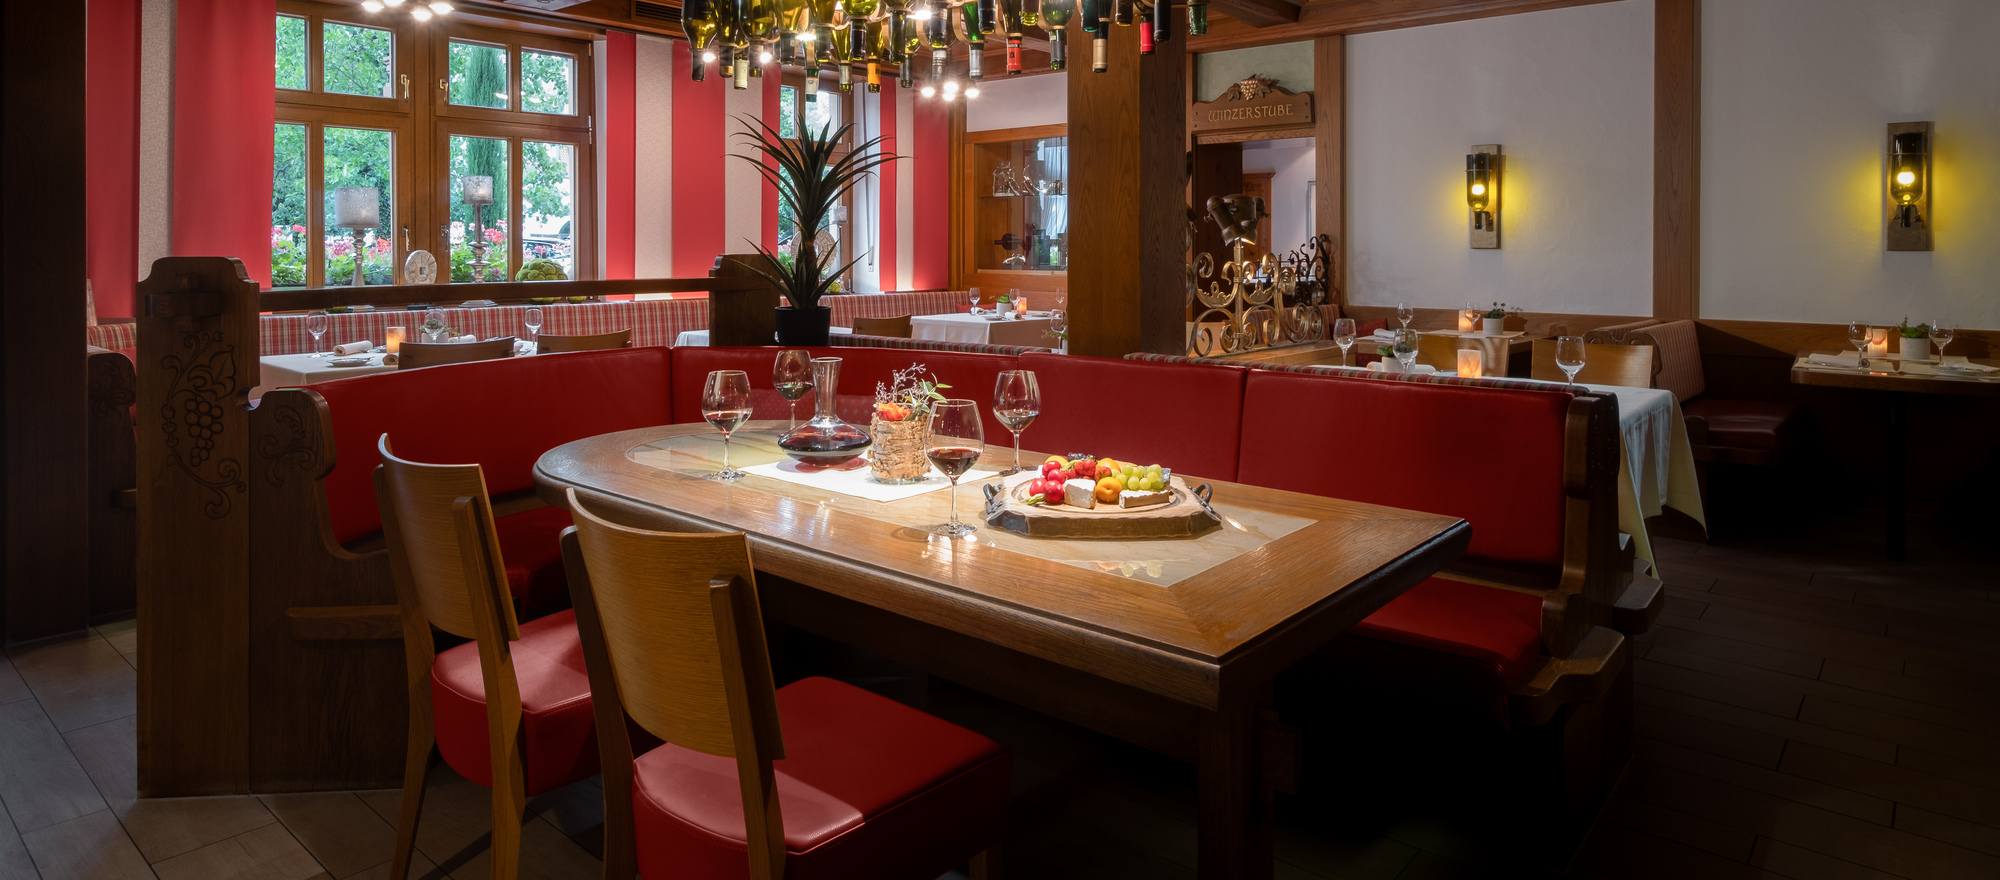 Gourmet interpretation of home-style cuisin serves the restaurant of the 4-star hotel Ringhotel Winzerhof in Rauenberg